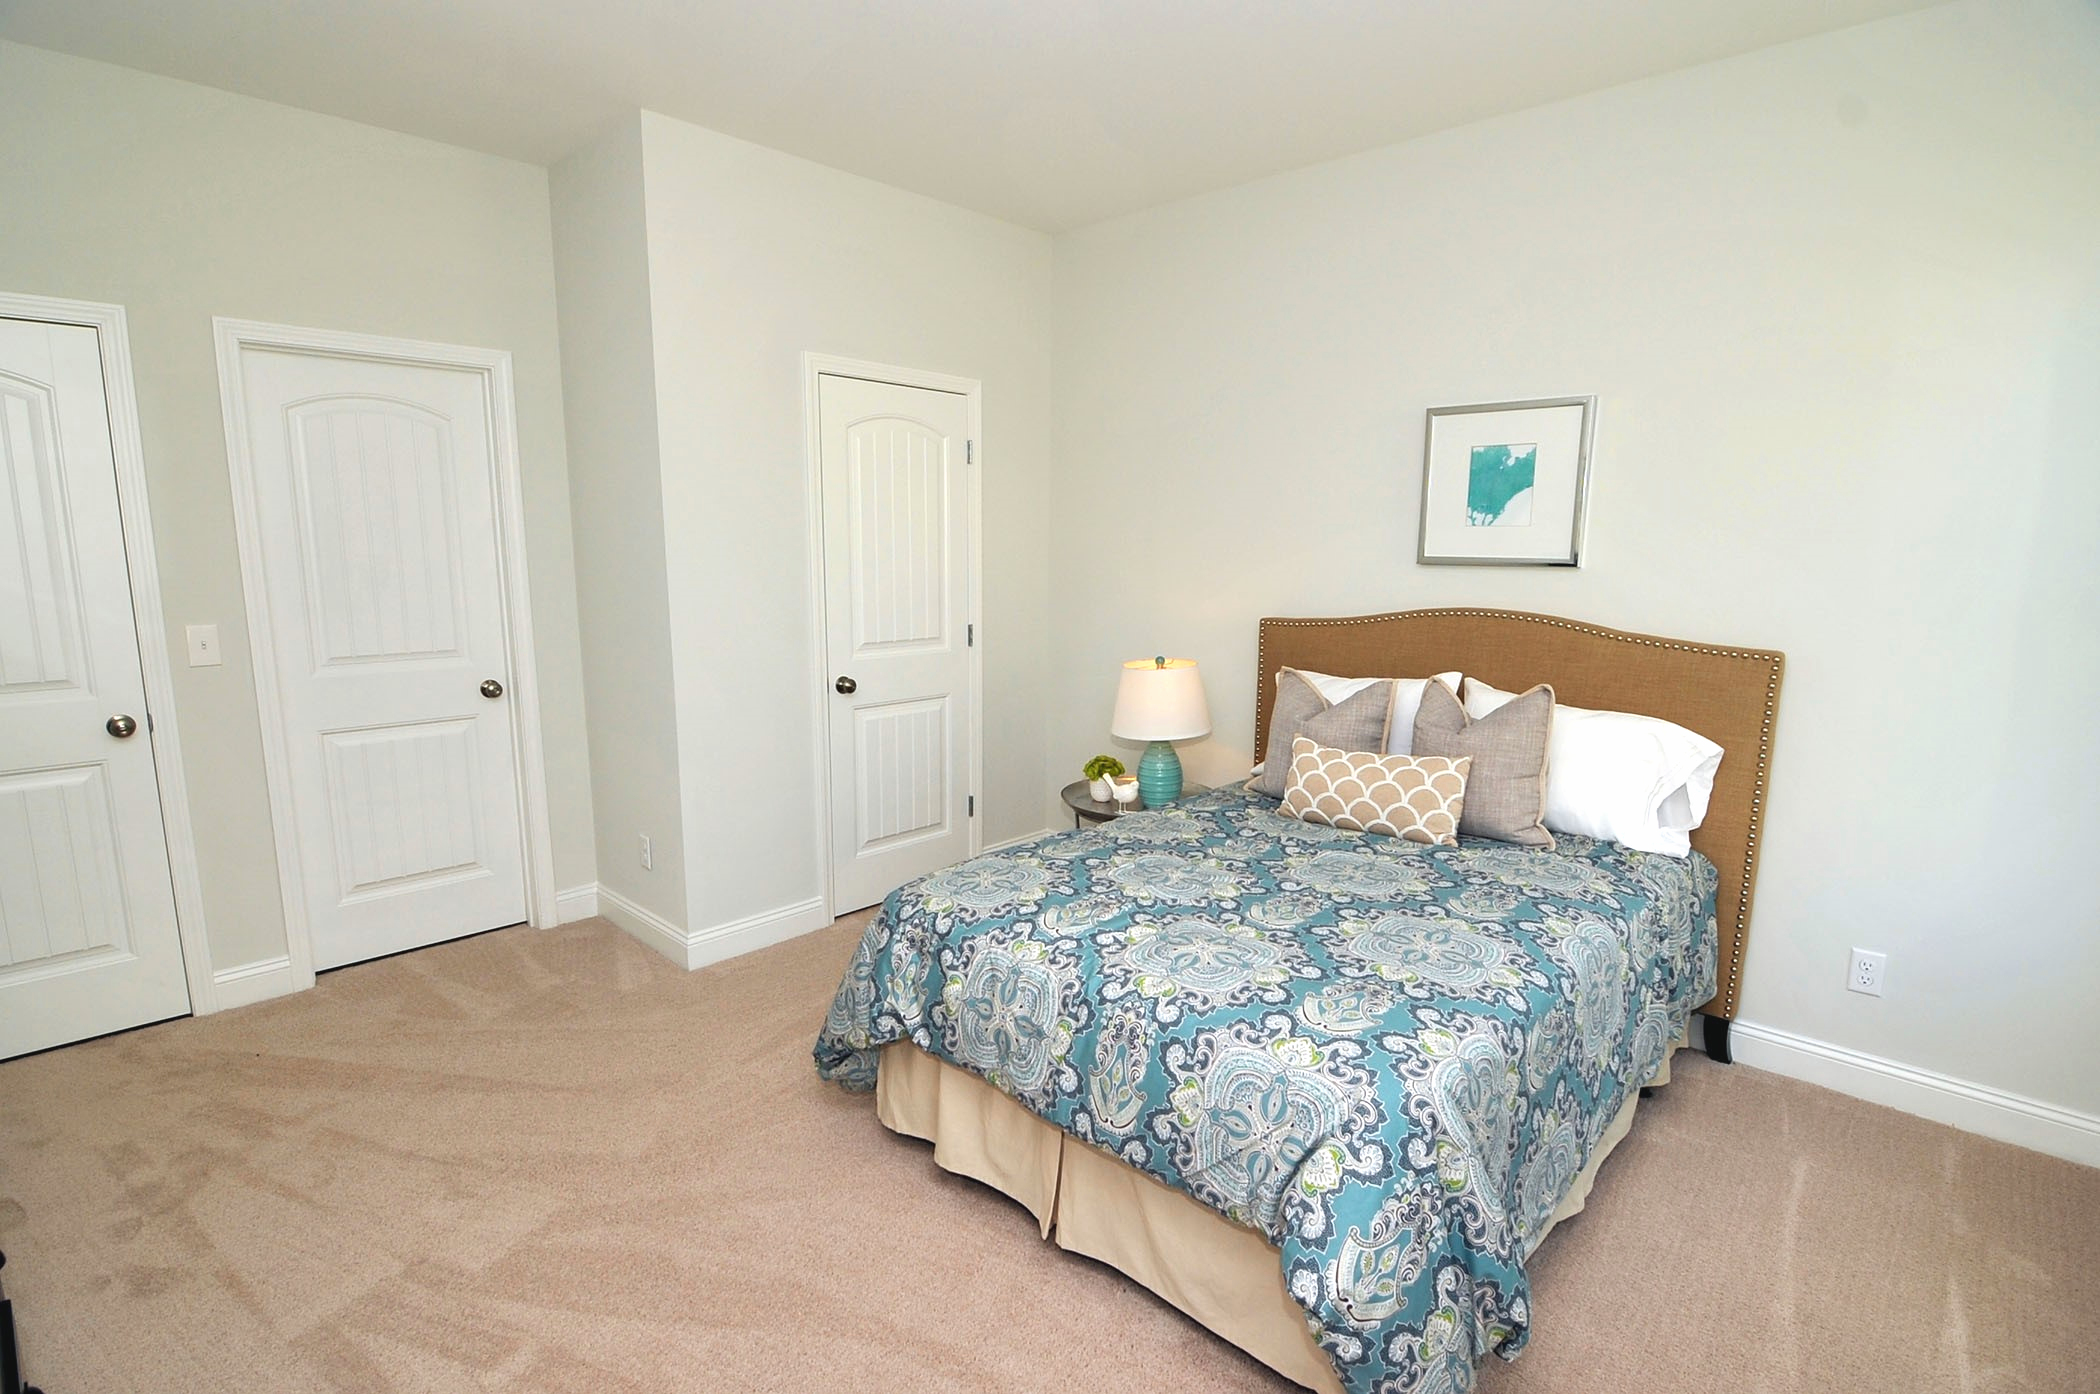 Roundtree Ridge Homes for Sale in Wilmington, NC   The Cameron Team